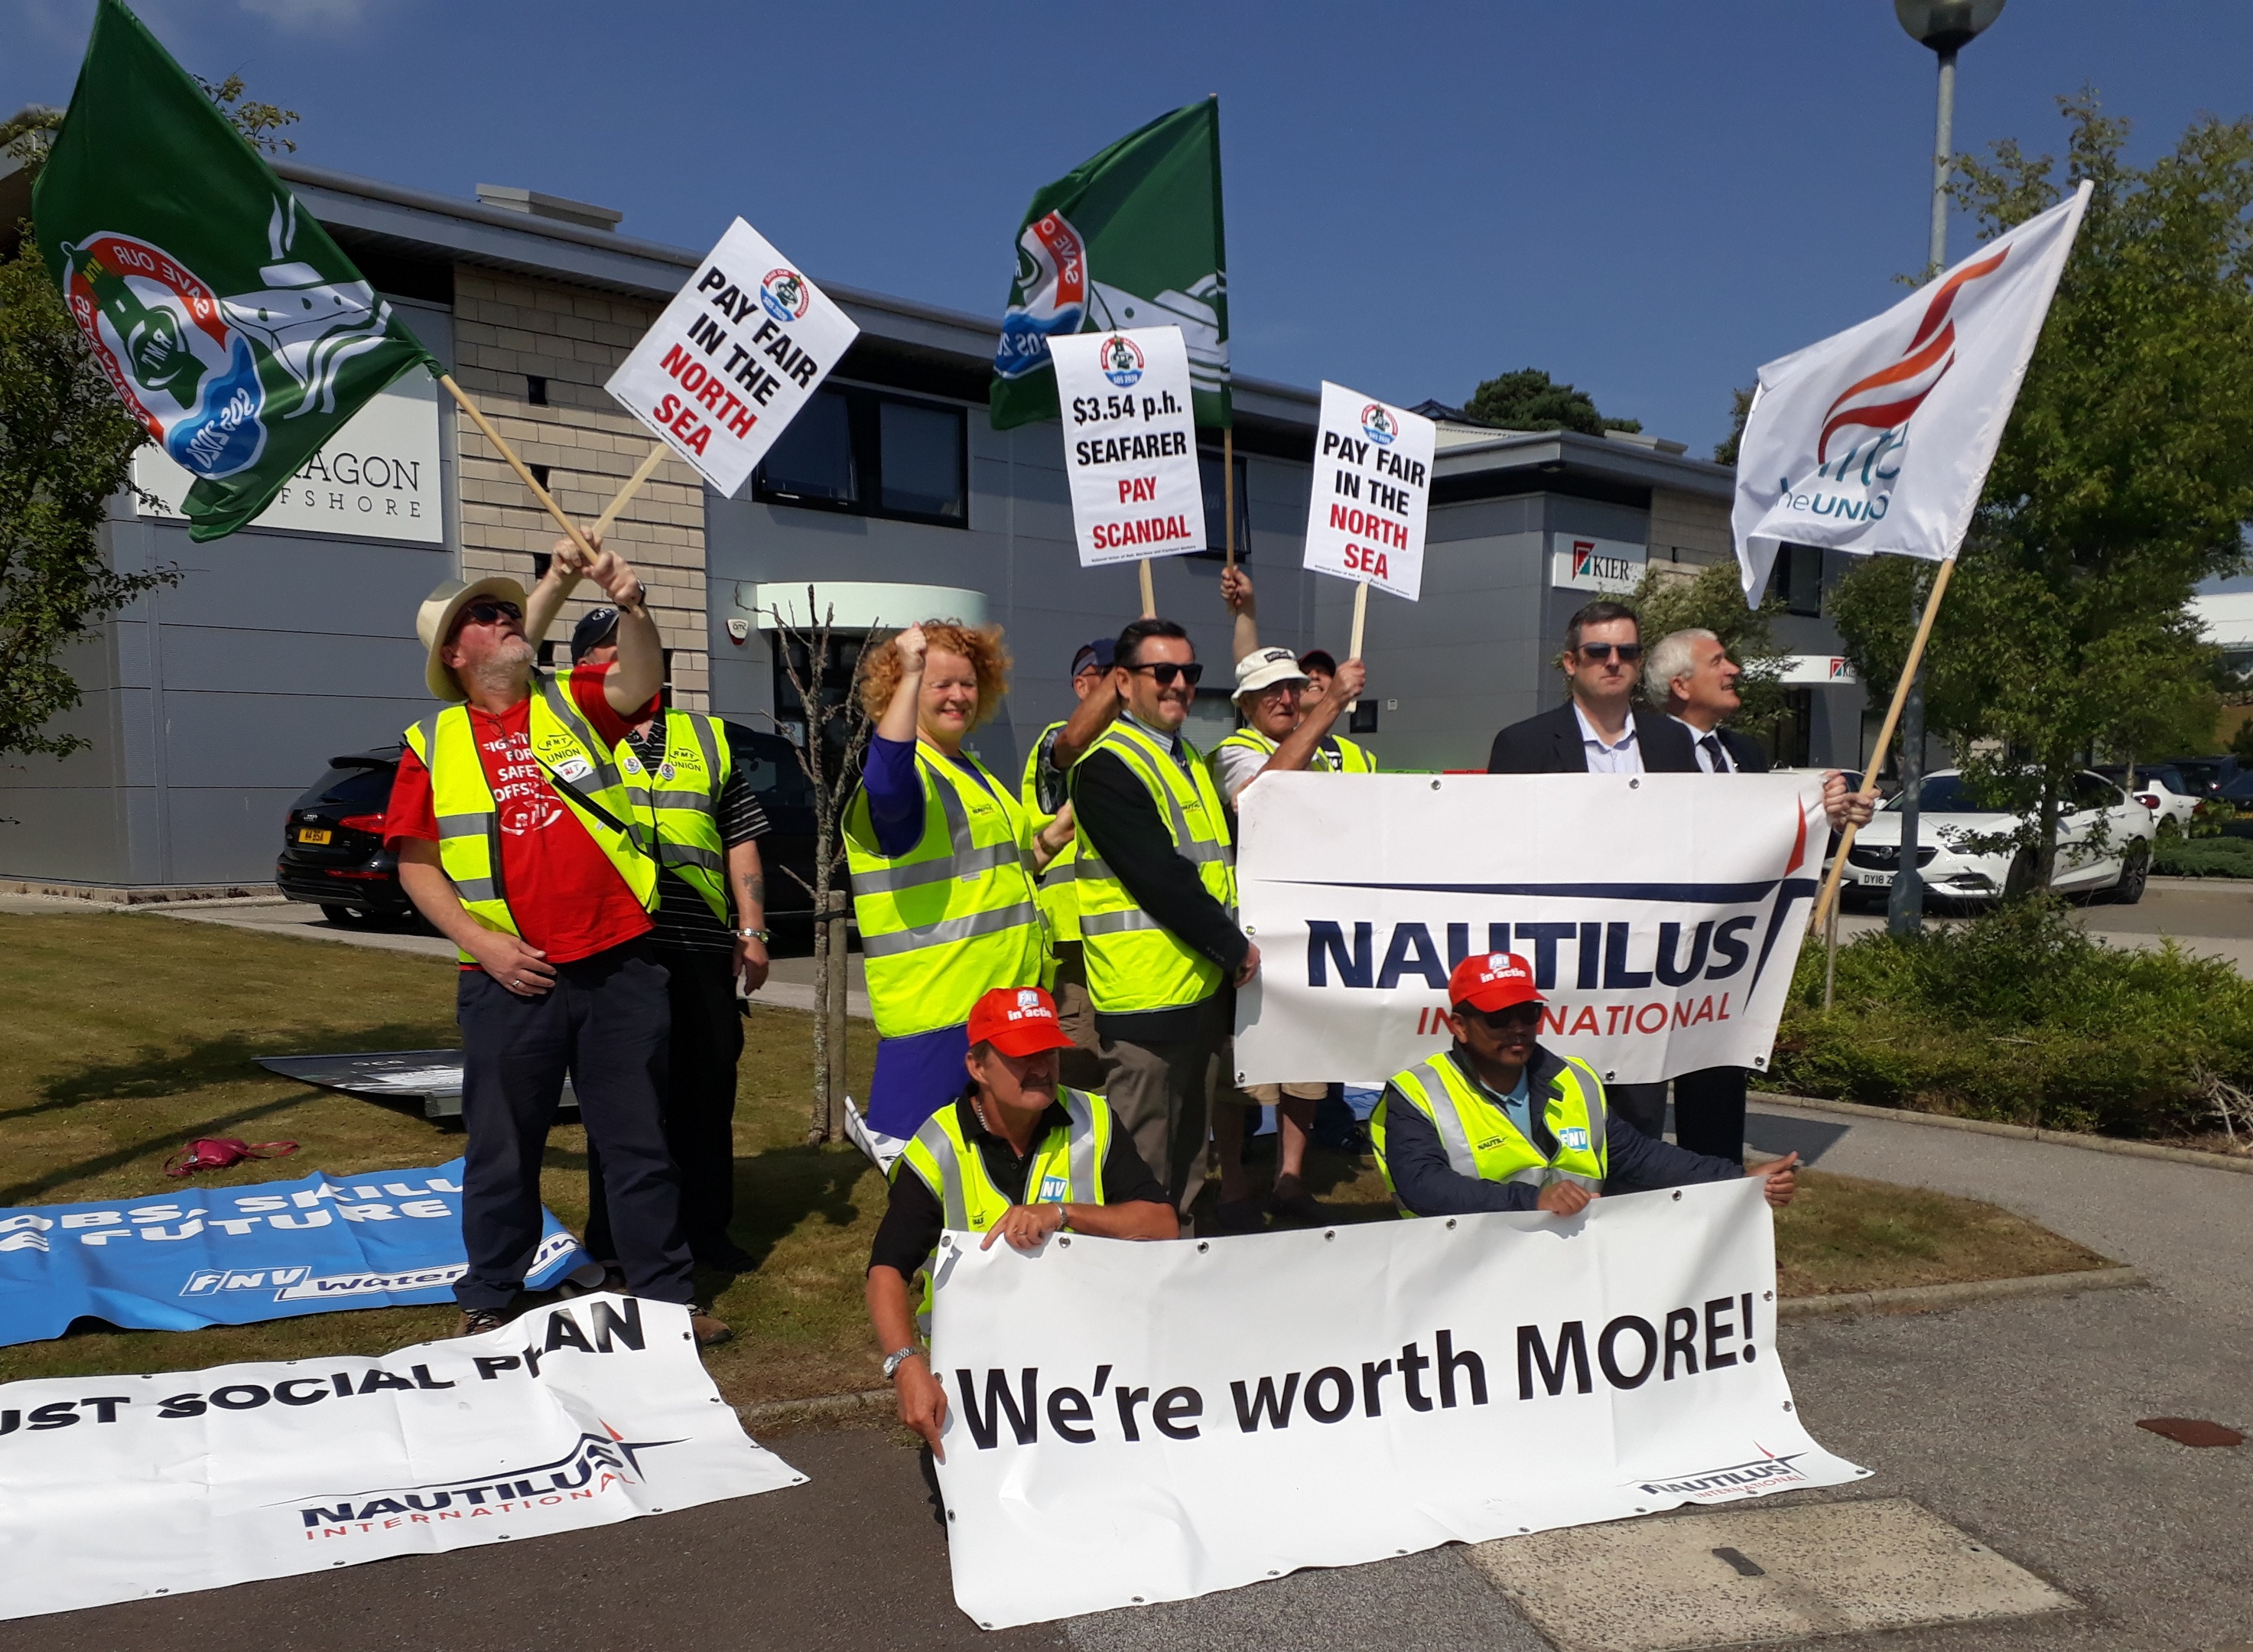 Borr Drilling protest by Nautilus, RMT and Unite unions.